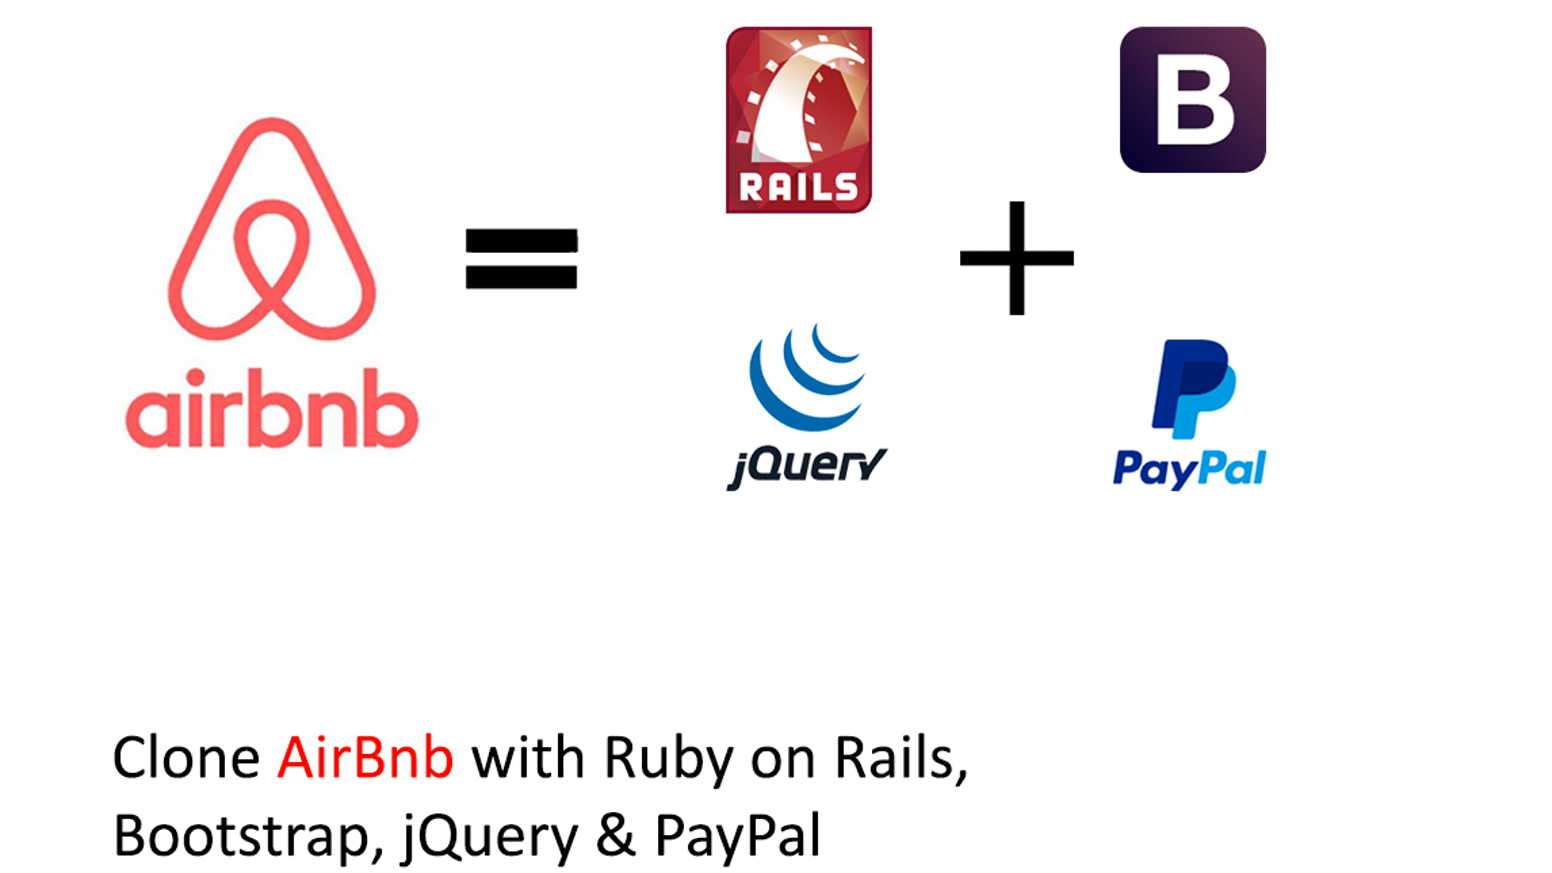 A Complete Course teaching how to clone AirBnb in 4 weeks with Ruby on Rails, Bootstrap & jQuery: Novice to advanced skill developer.